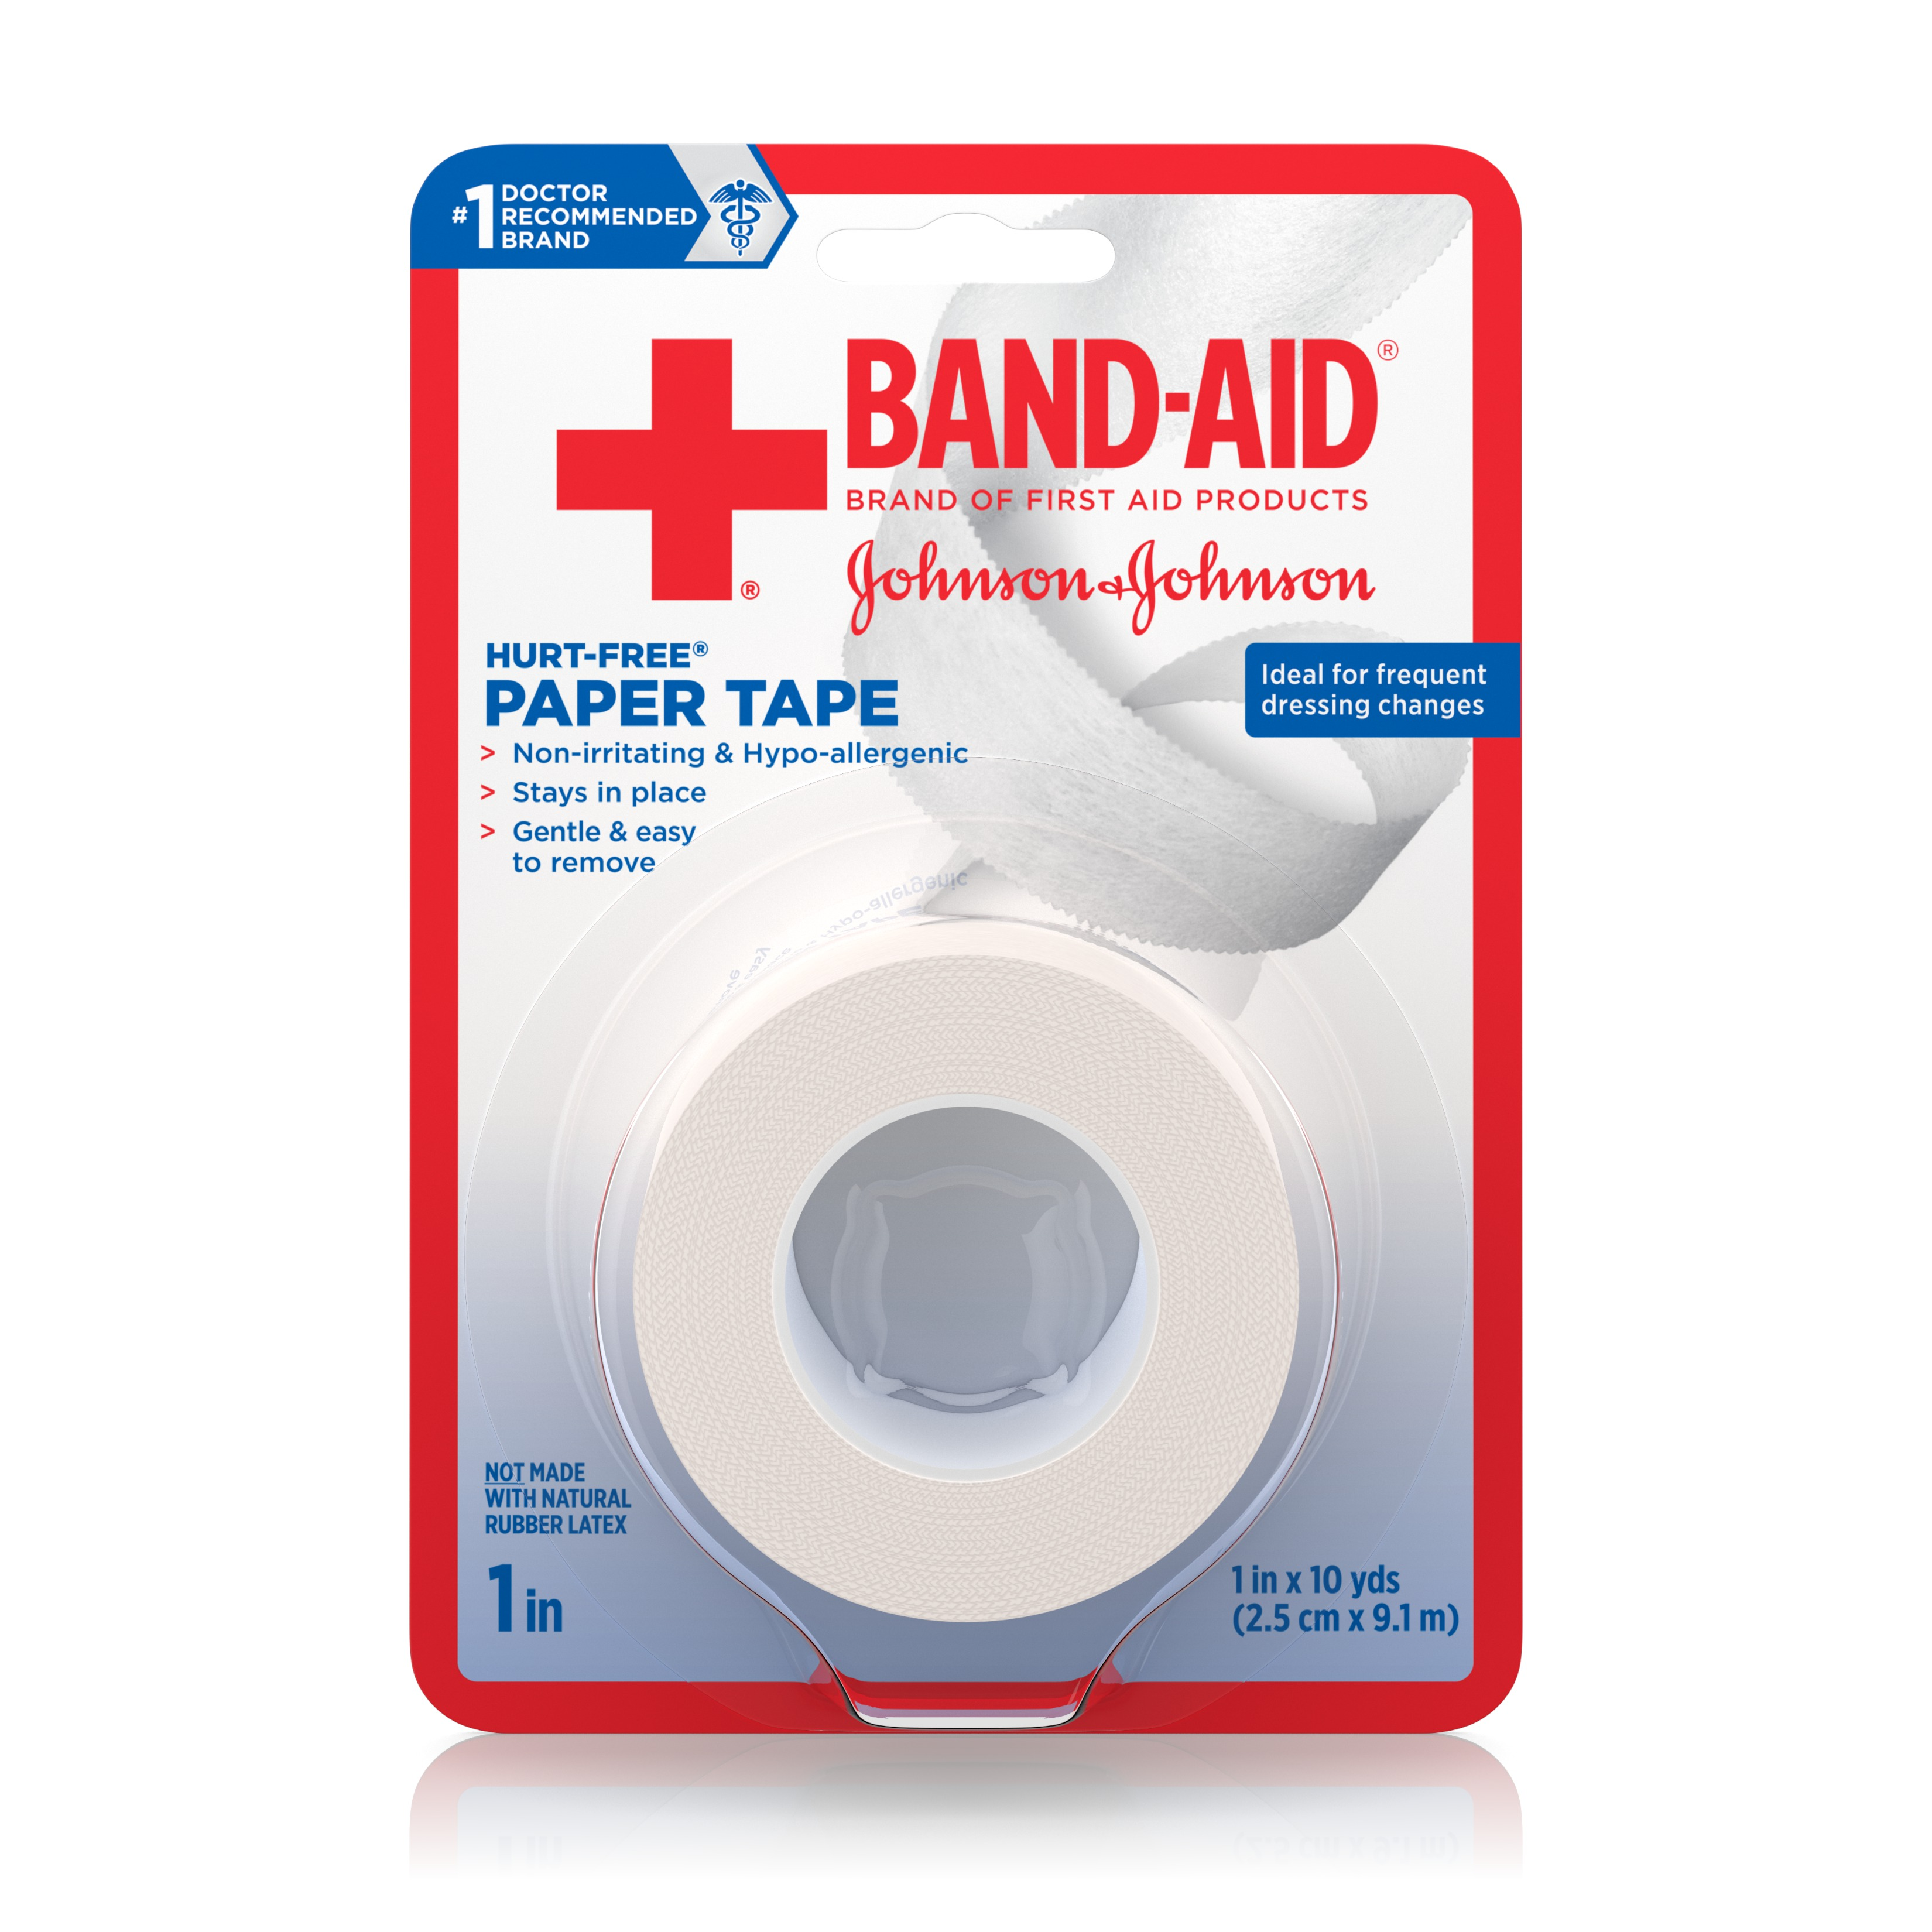 Band-Aid Brand First Aid Hurt-Free Medical Paper Tape, 1 in by 10 yd